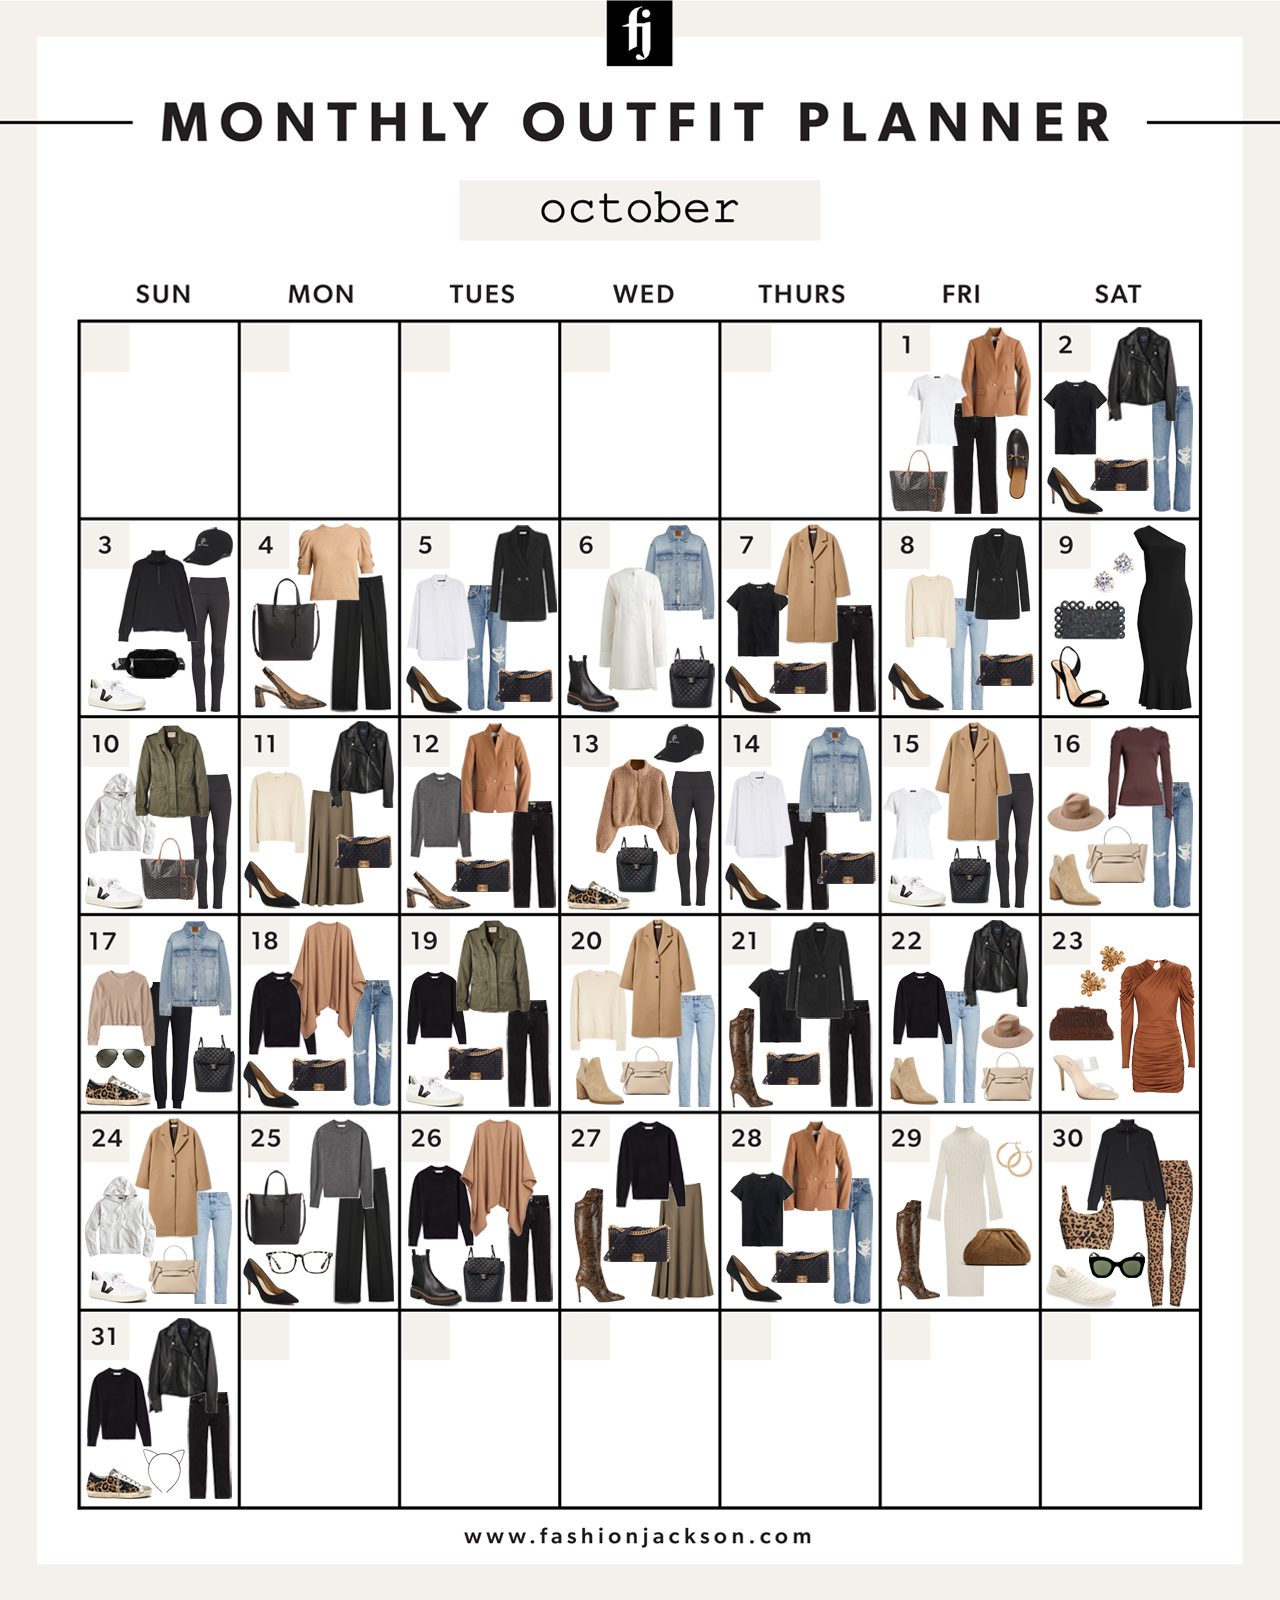 Monthly Outfit Planner October